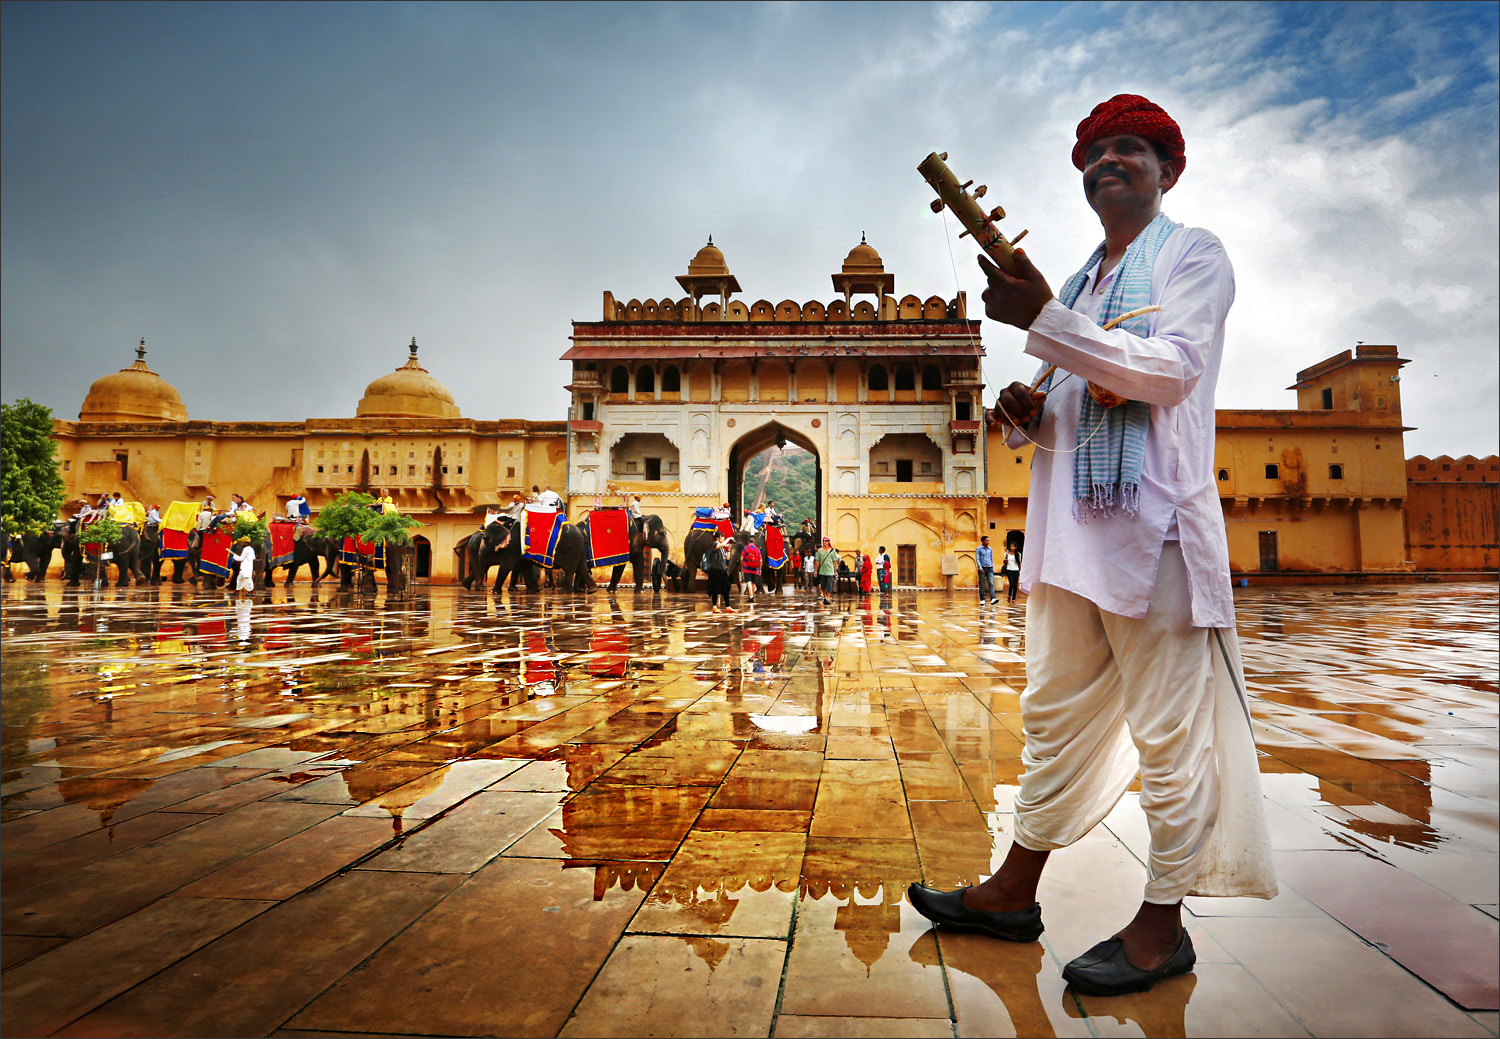 Photograph Rajasthan busker by Woosra Kim on 500px